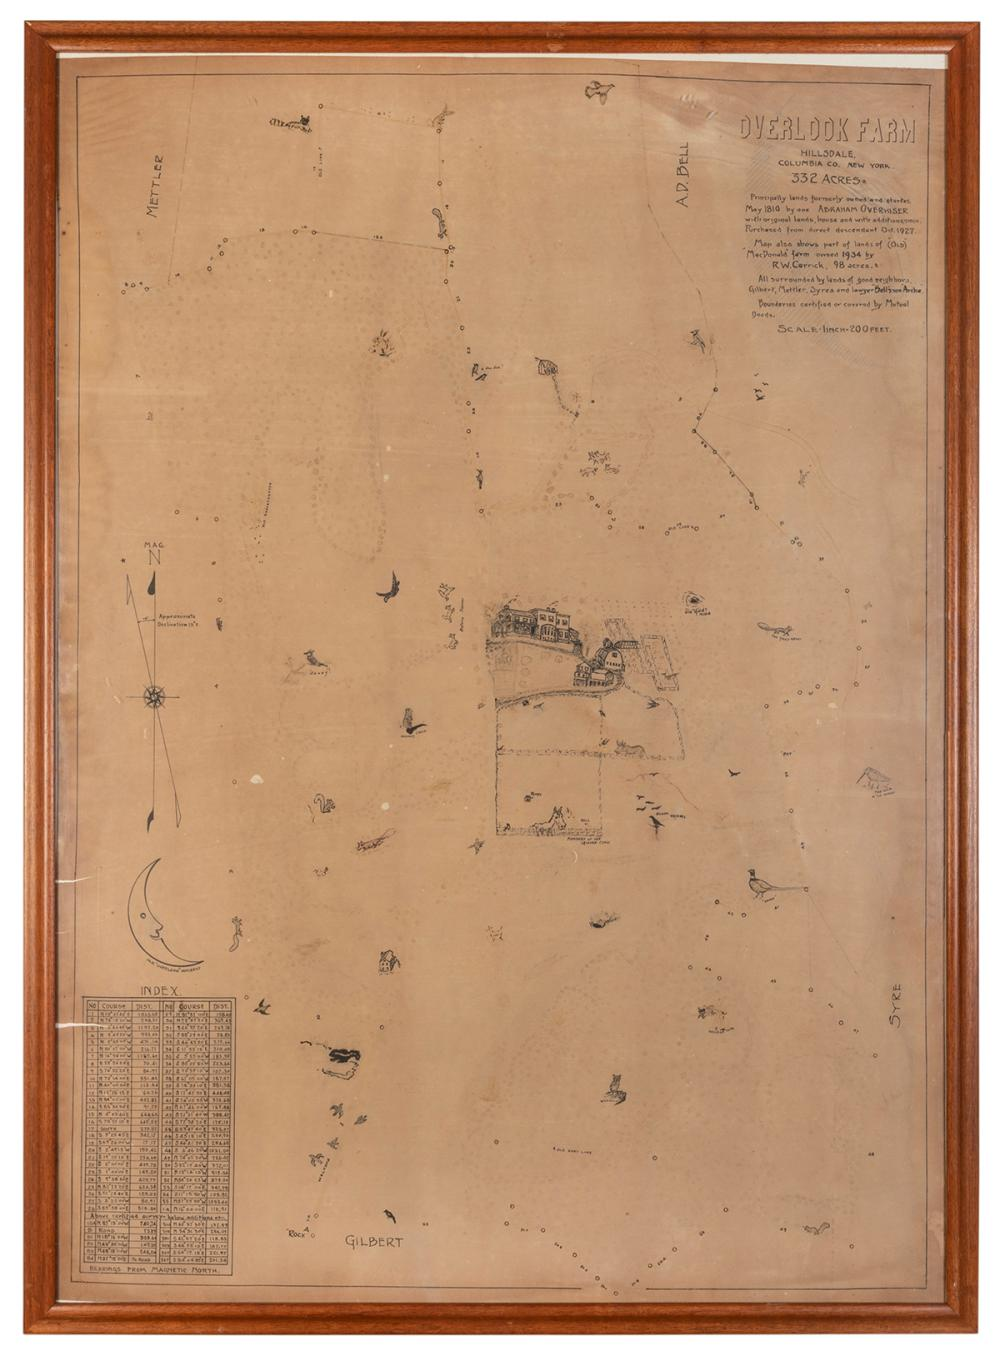 [MAP]. A HAND DRAWN MAP OF A FARM IN COLUMBIA COUNTY, NEW Y...